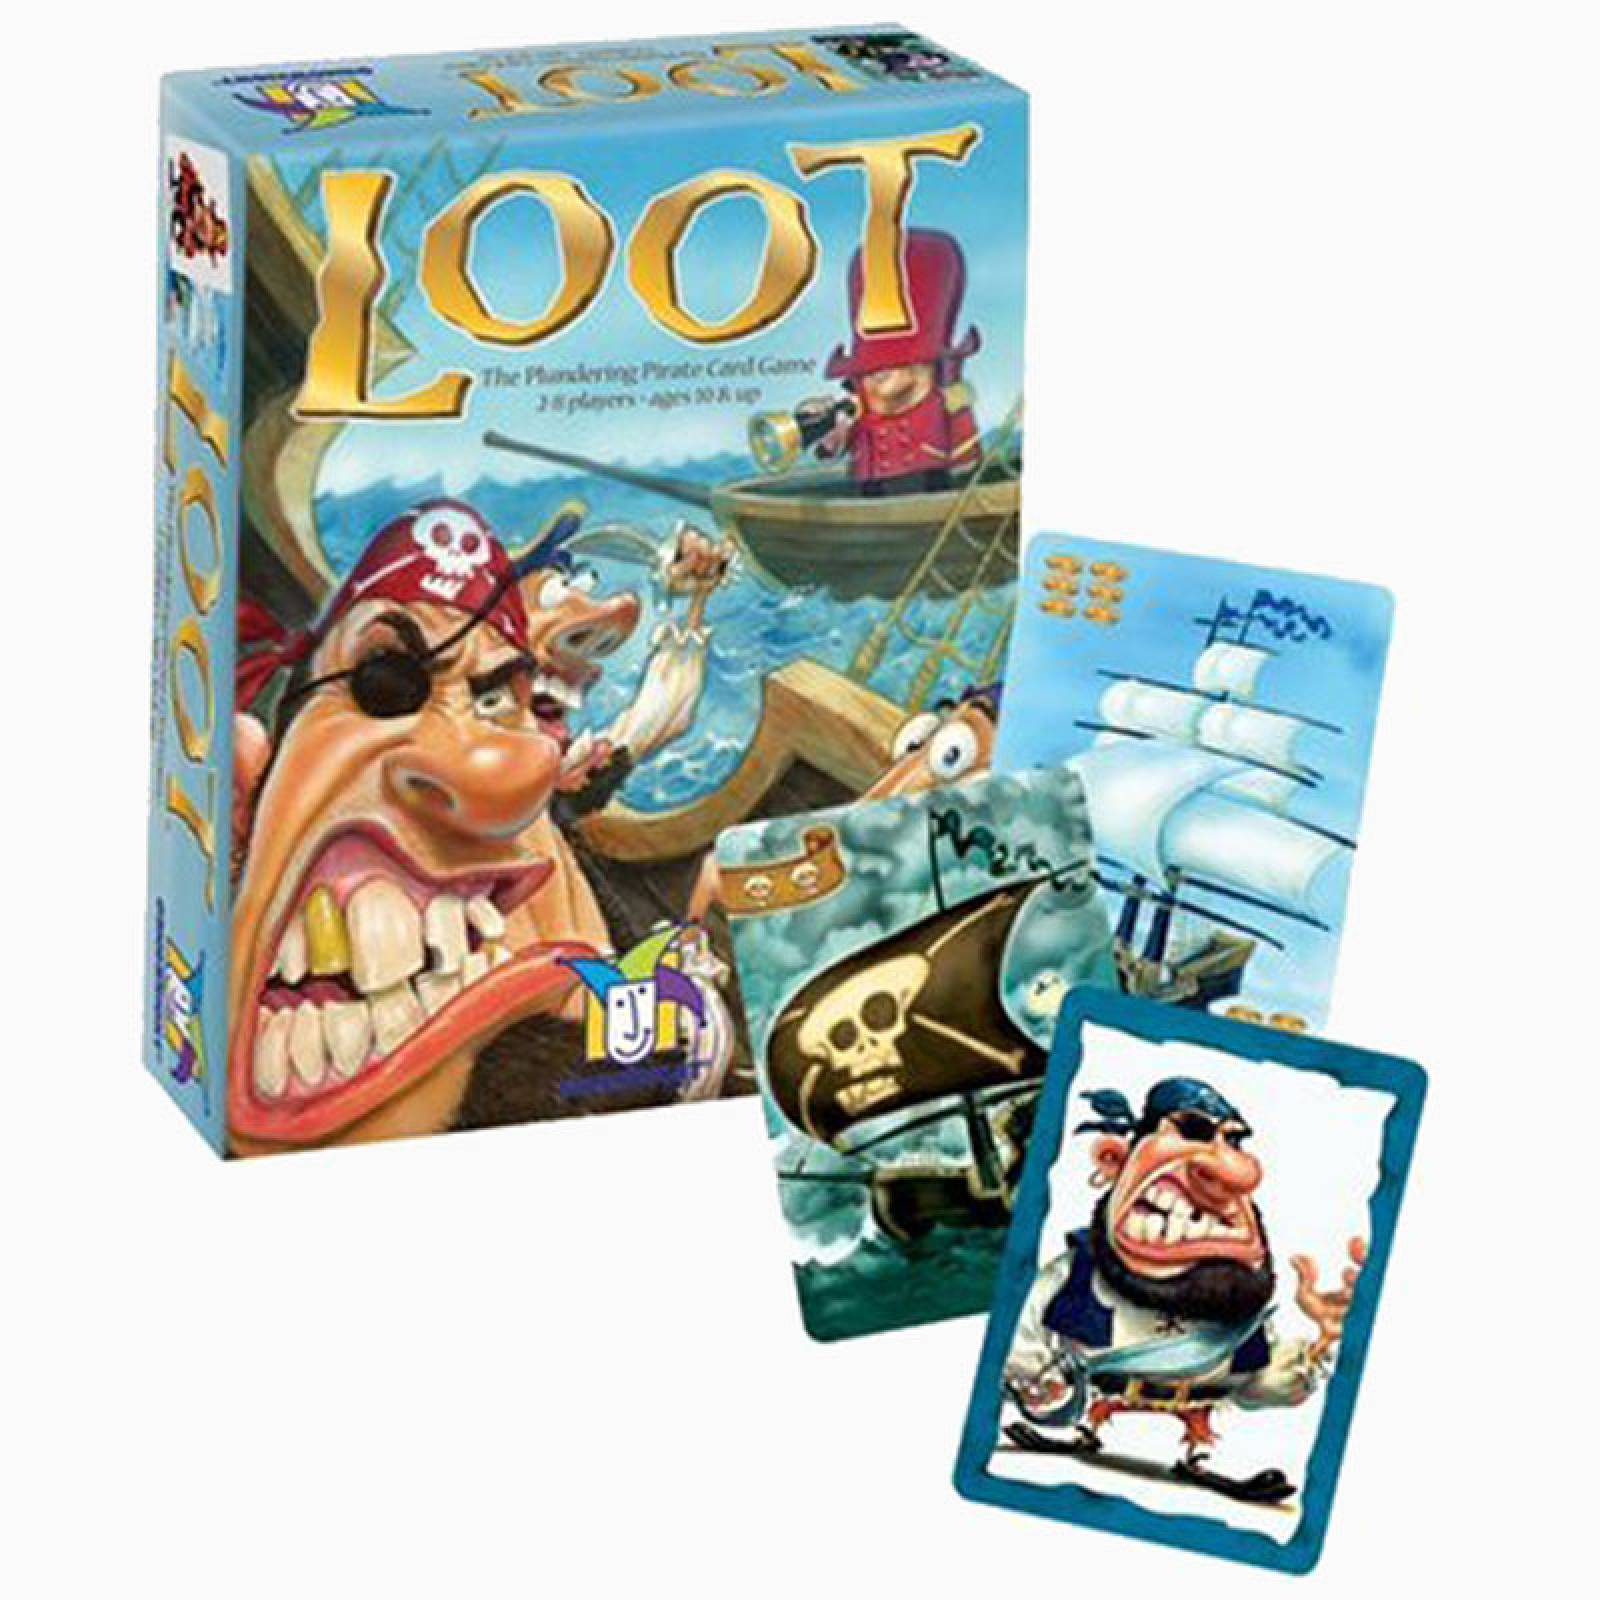 Loot - The Plundering Pirate Card Game 10+